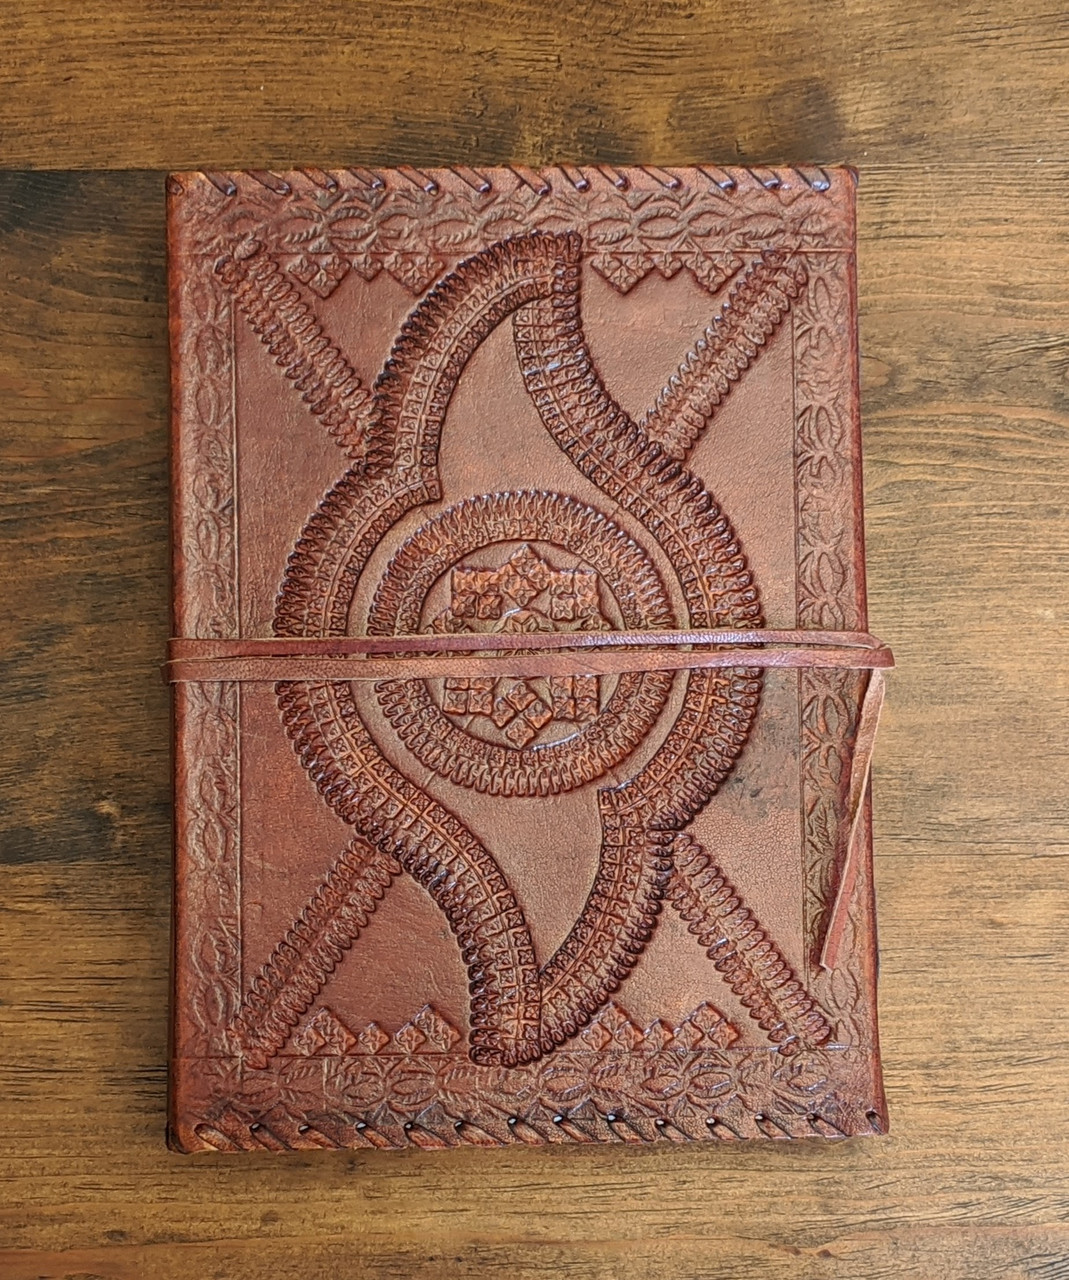 OLD WORLD Leather Journal - Embossed - back cover